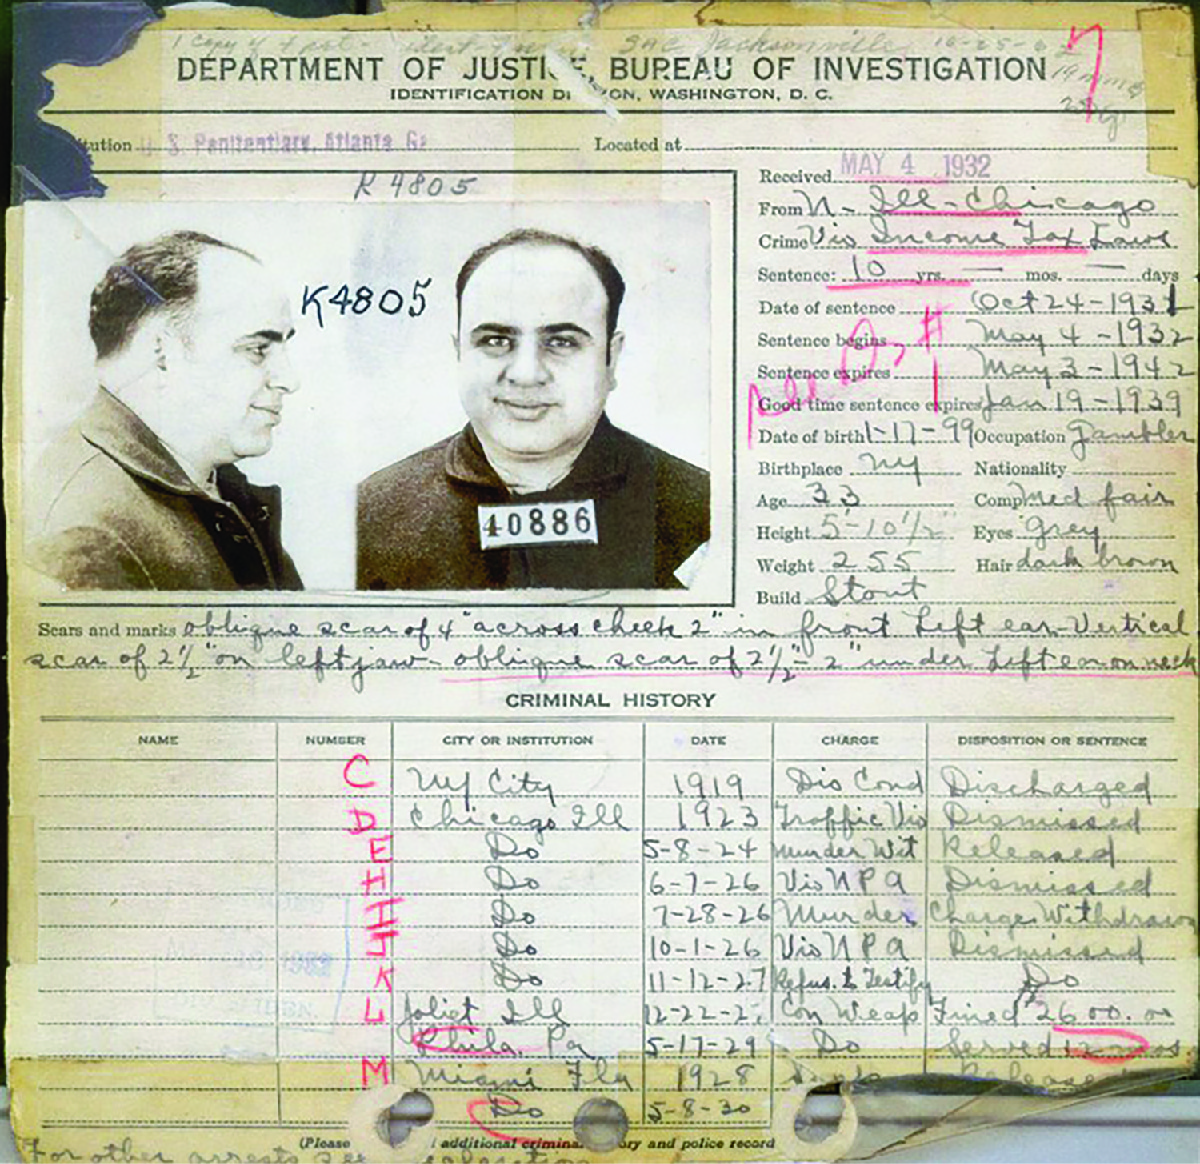 The FBI's 1932 criminal record on Al Capone shows the many charges against him, most of which were dismissed.